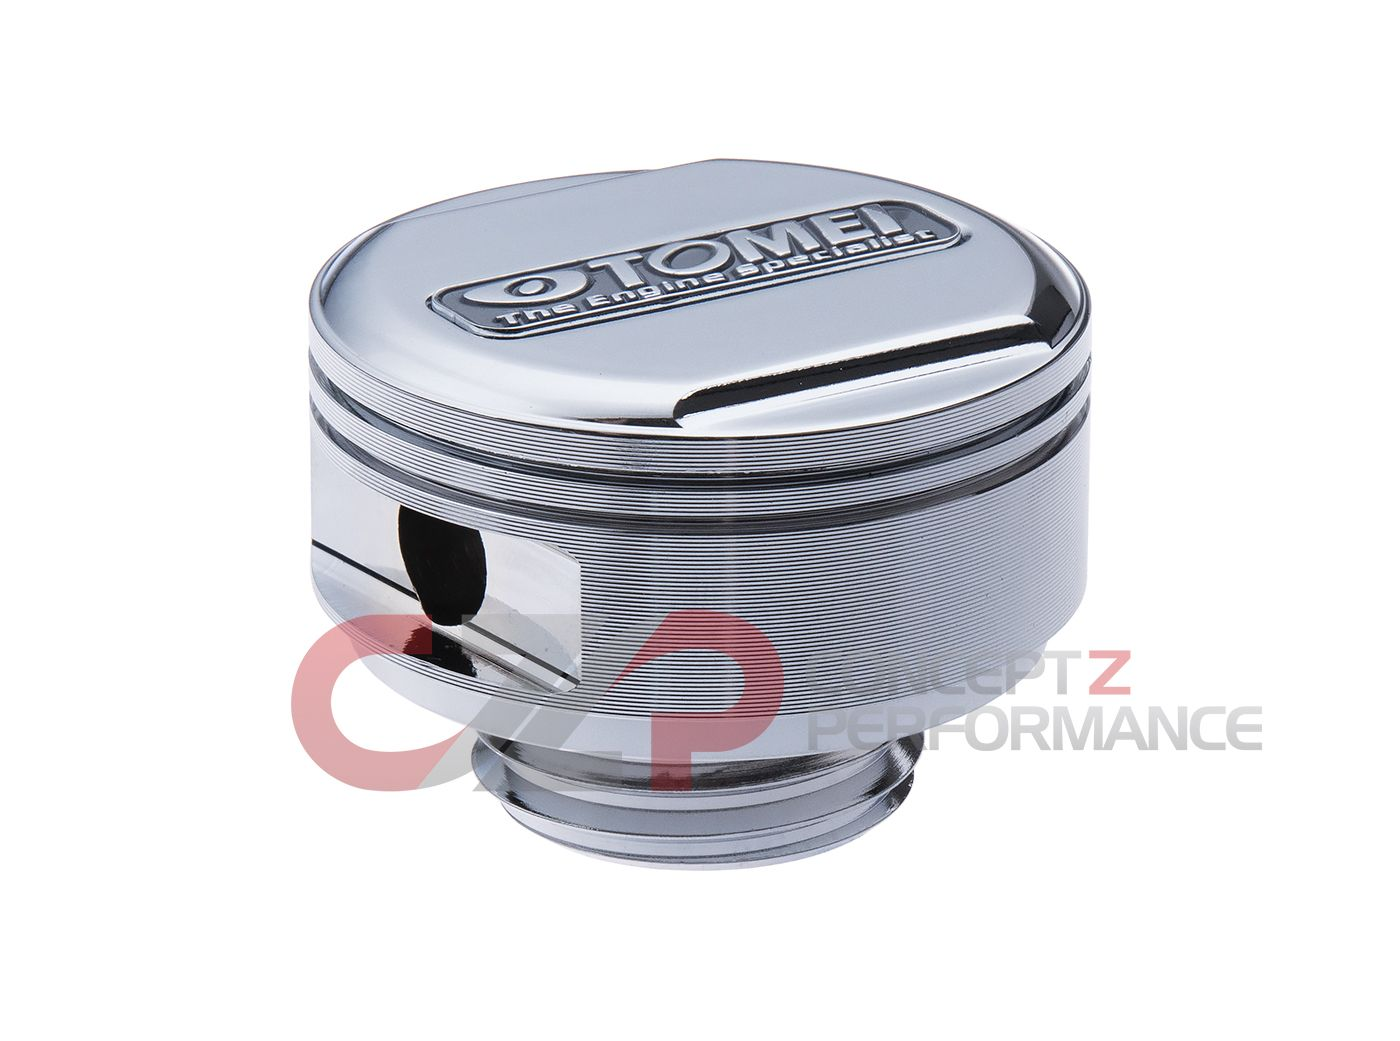 Tomei Nissan M32x3 5mm Forged Piston Oil Filler Cap SILVER TE201A-NS00A -  Concept Z Performance